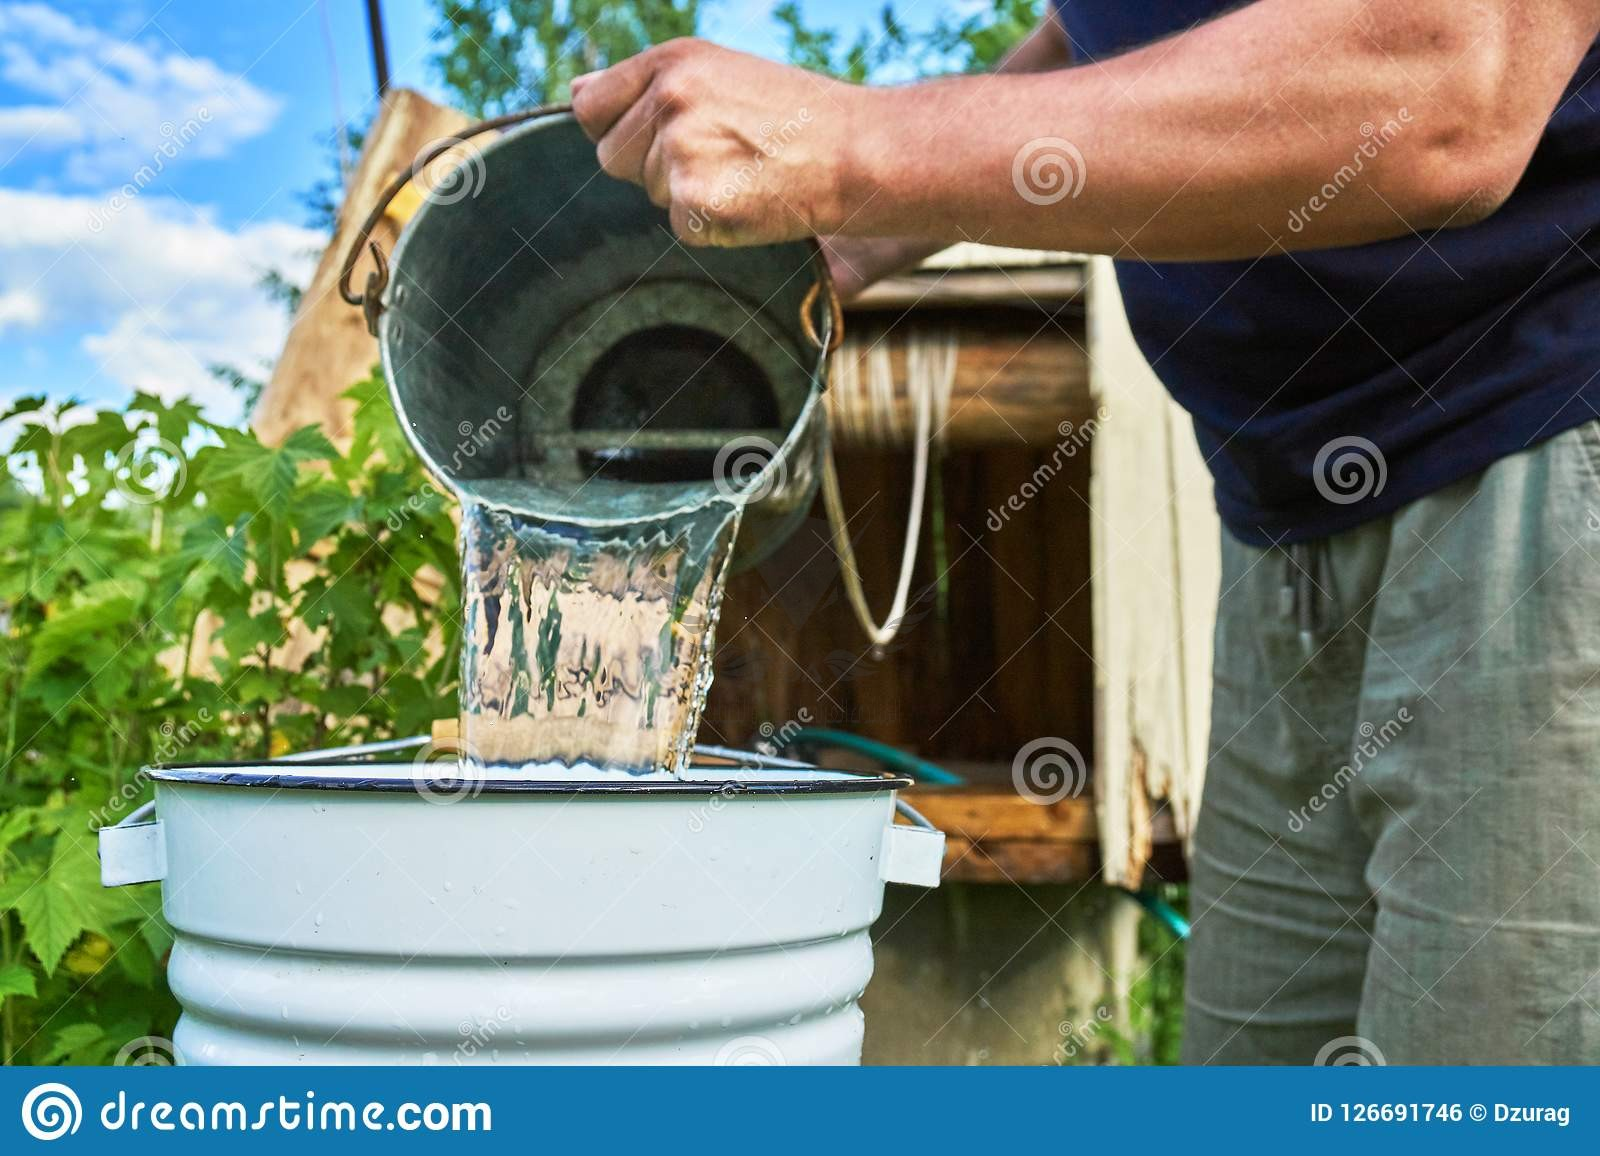 man-pouring-water-just-taken-up-well-enameled-bucket-man-pouring-water-just-taken-up-well-enam...jpg